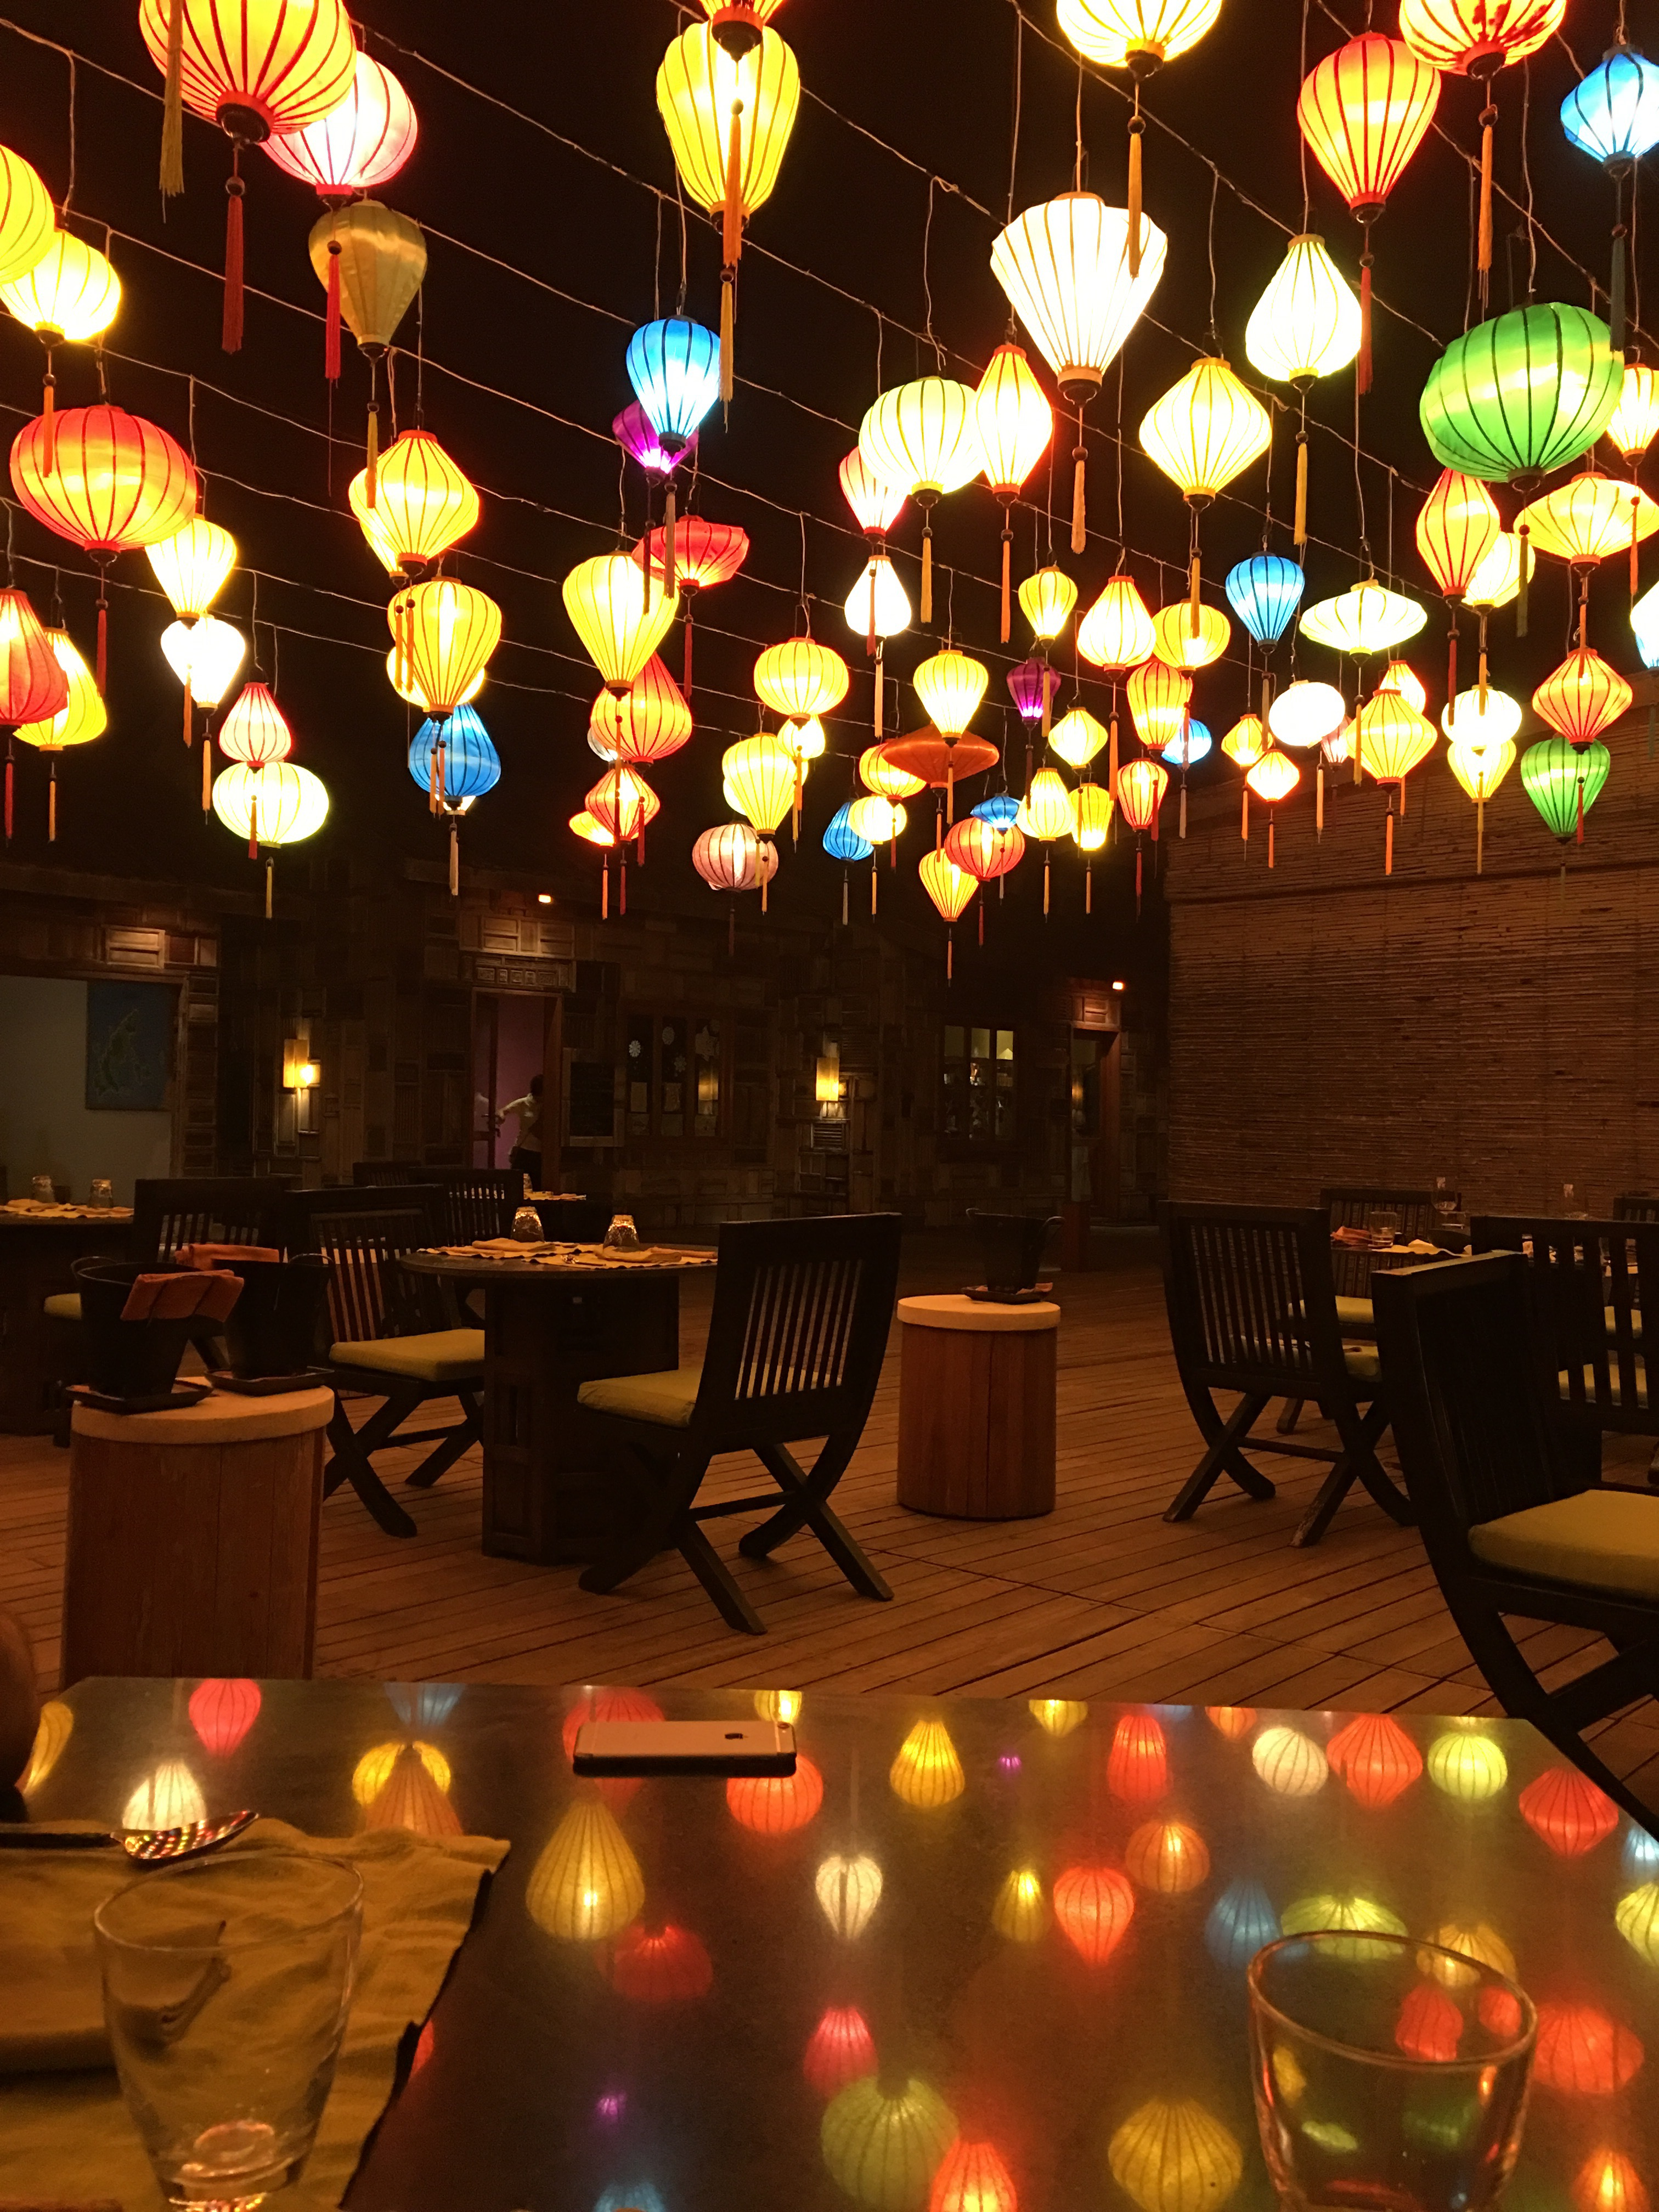 Six senses_lanterns_restaurant_Con Dao_Vietnam